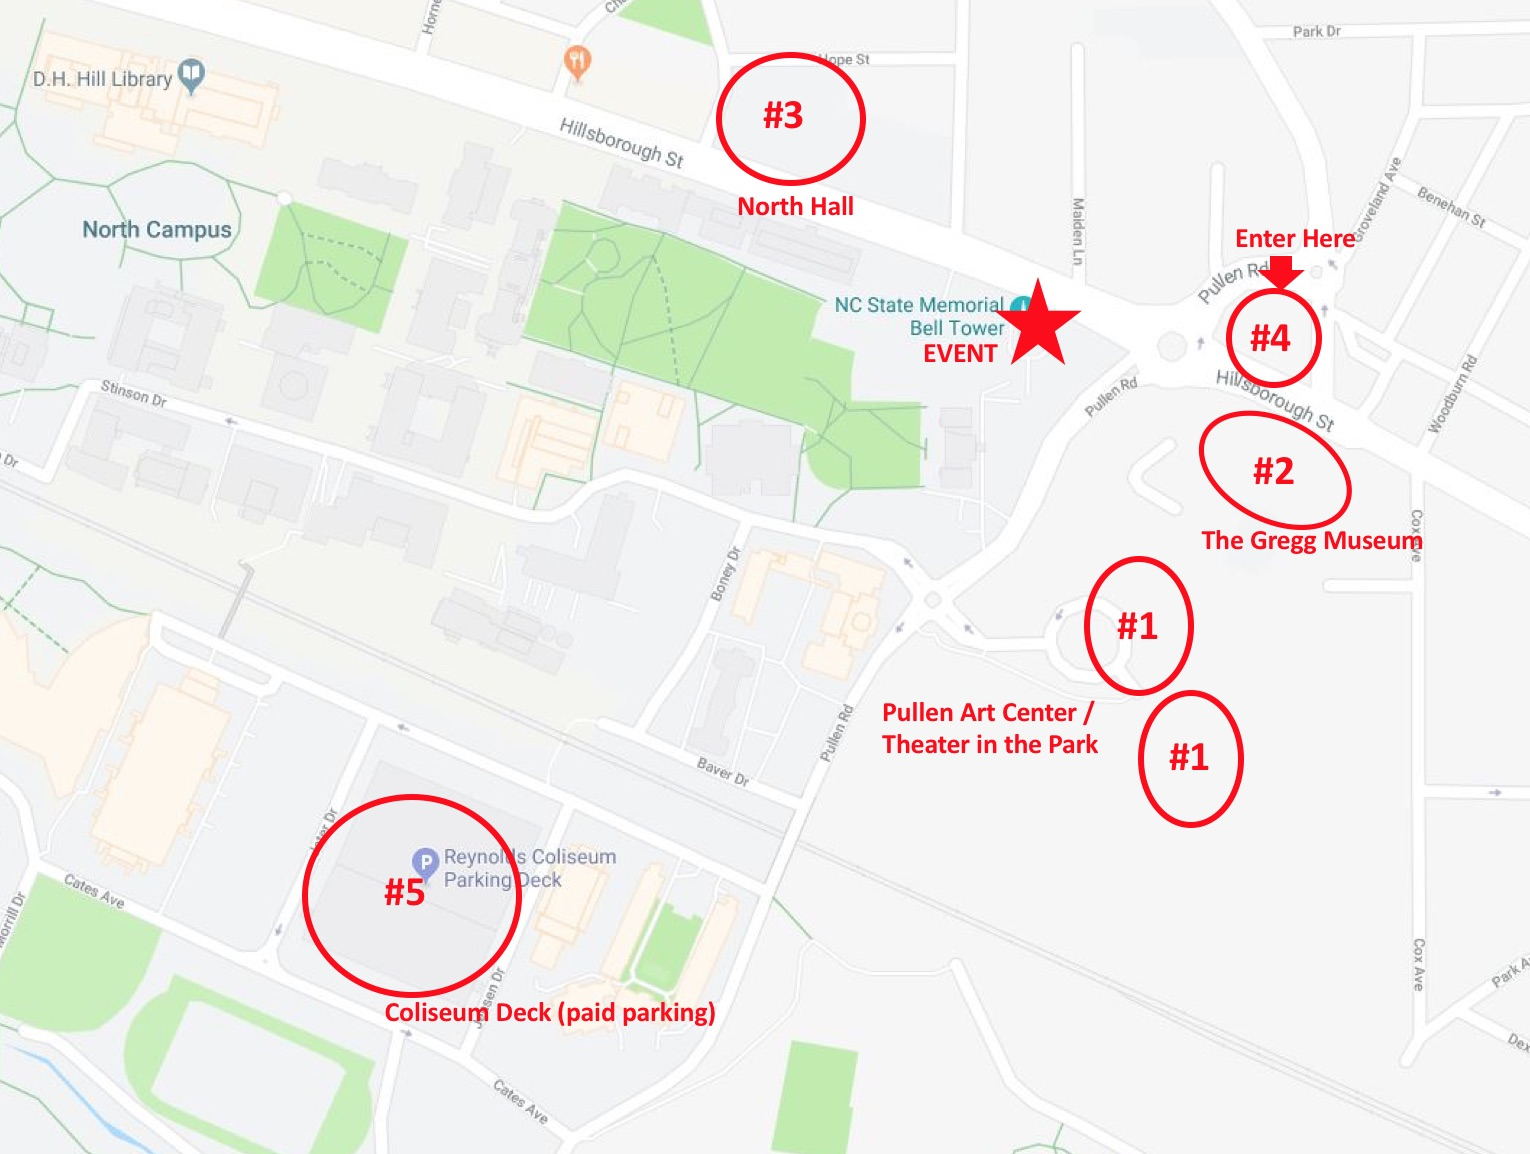 Map of campus with parking information